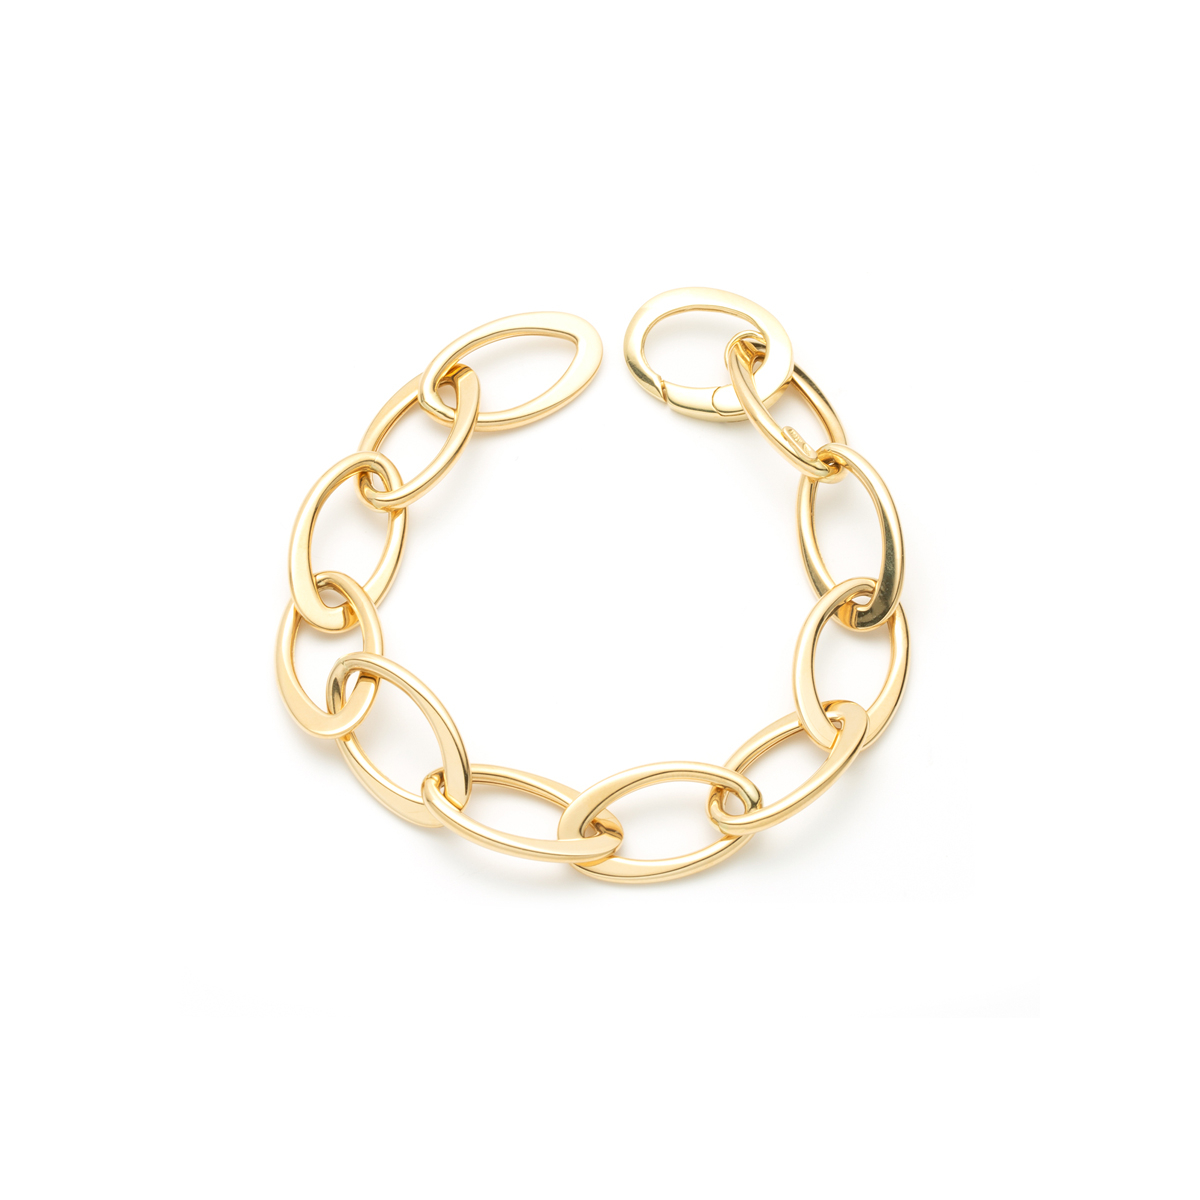 Hollow Oval Link Chain Bracelet in 18 Kt Yellow Gold